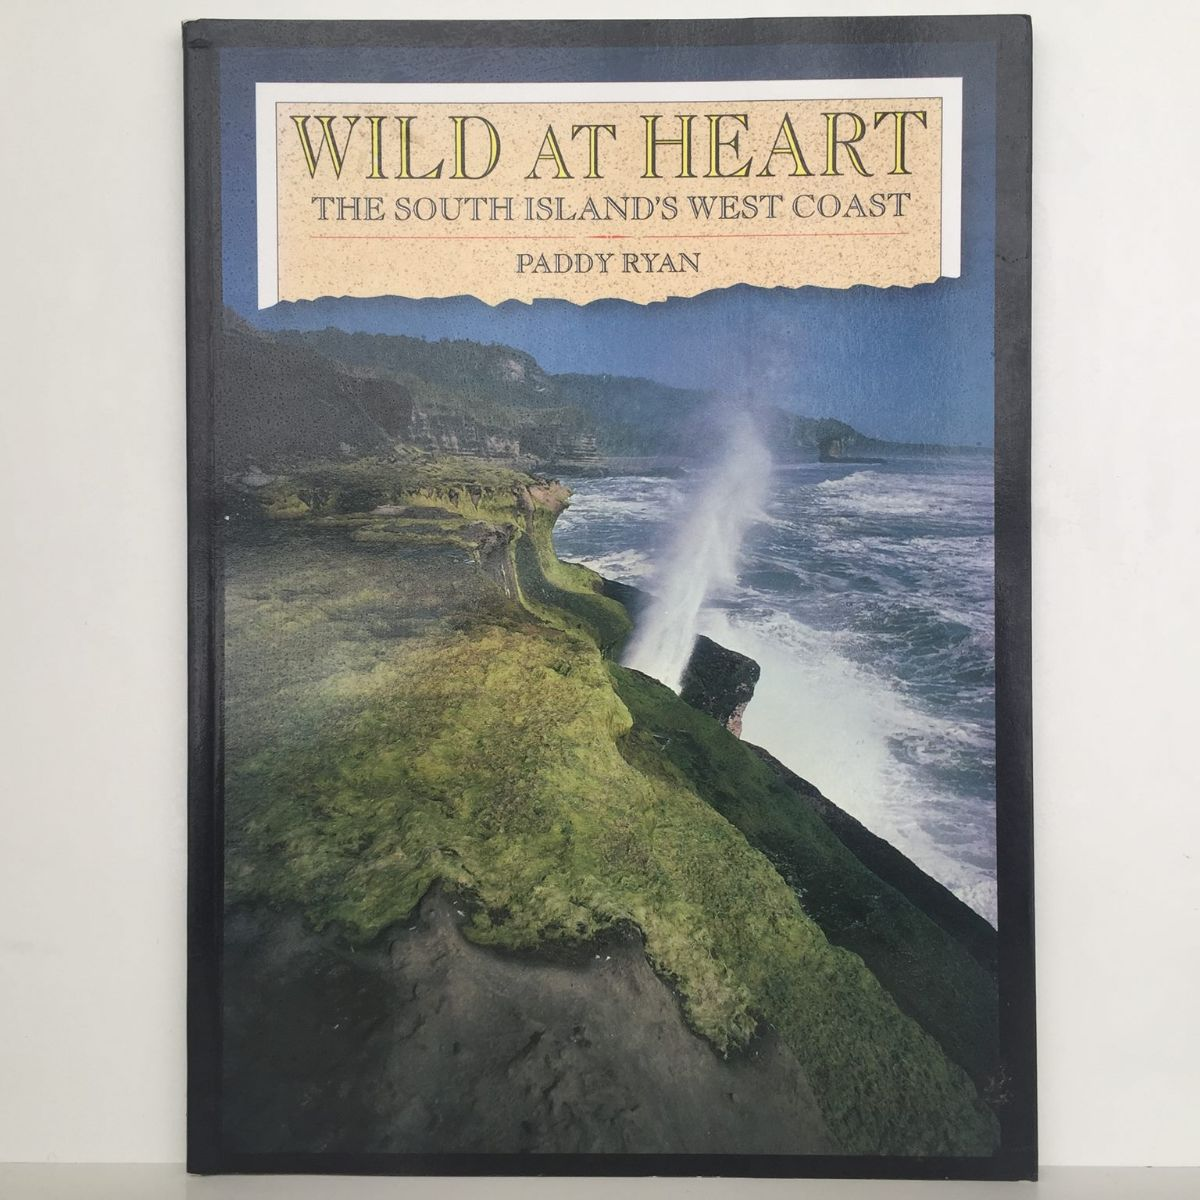 WILD AT HEART : The South Island's West Coast